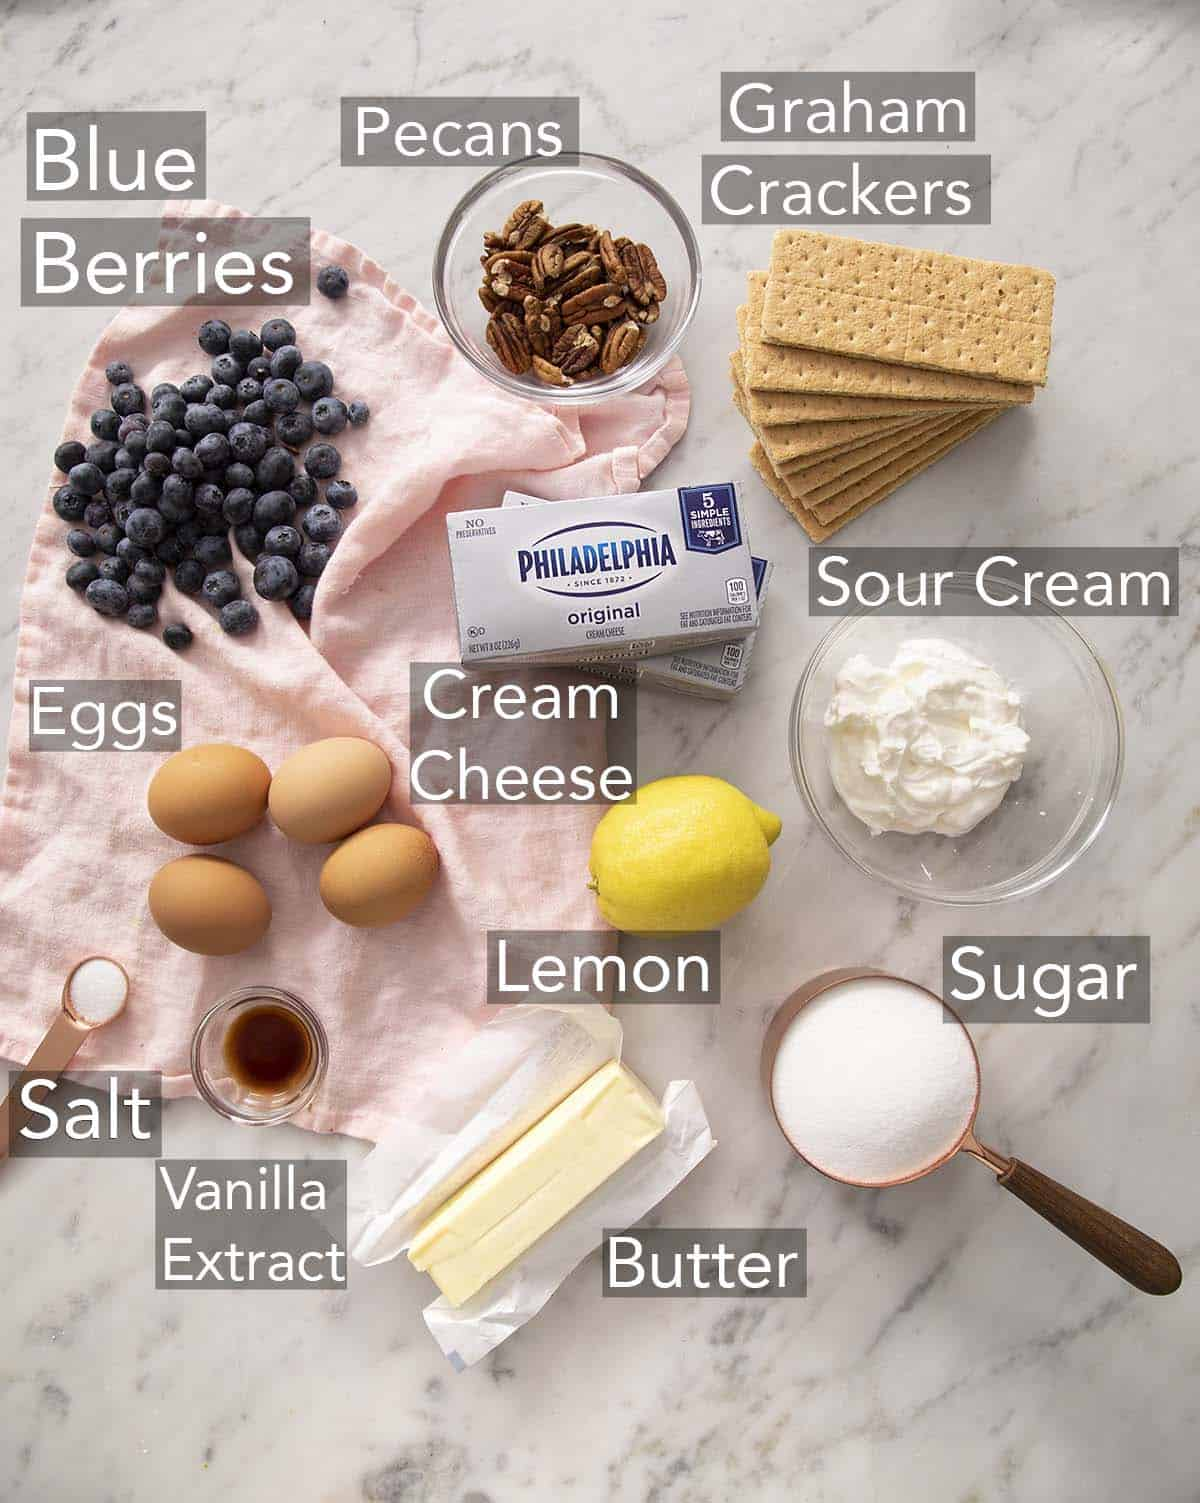 Ingredients for making blueberry mini cheesecakes on a counter.